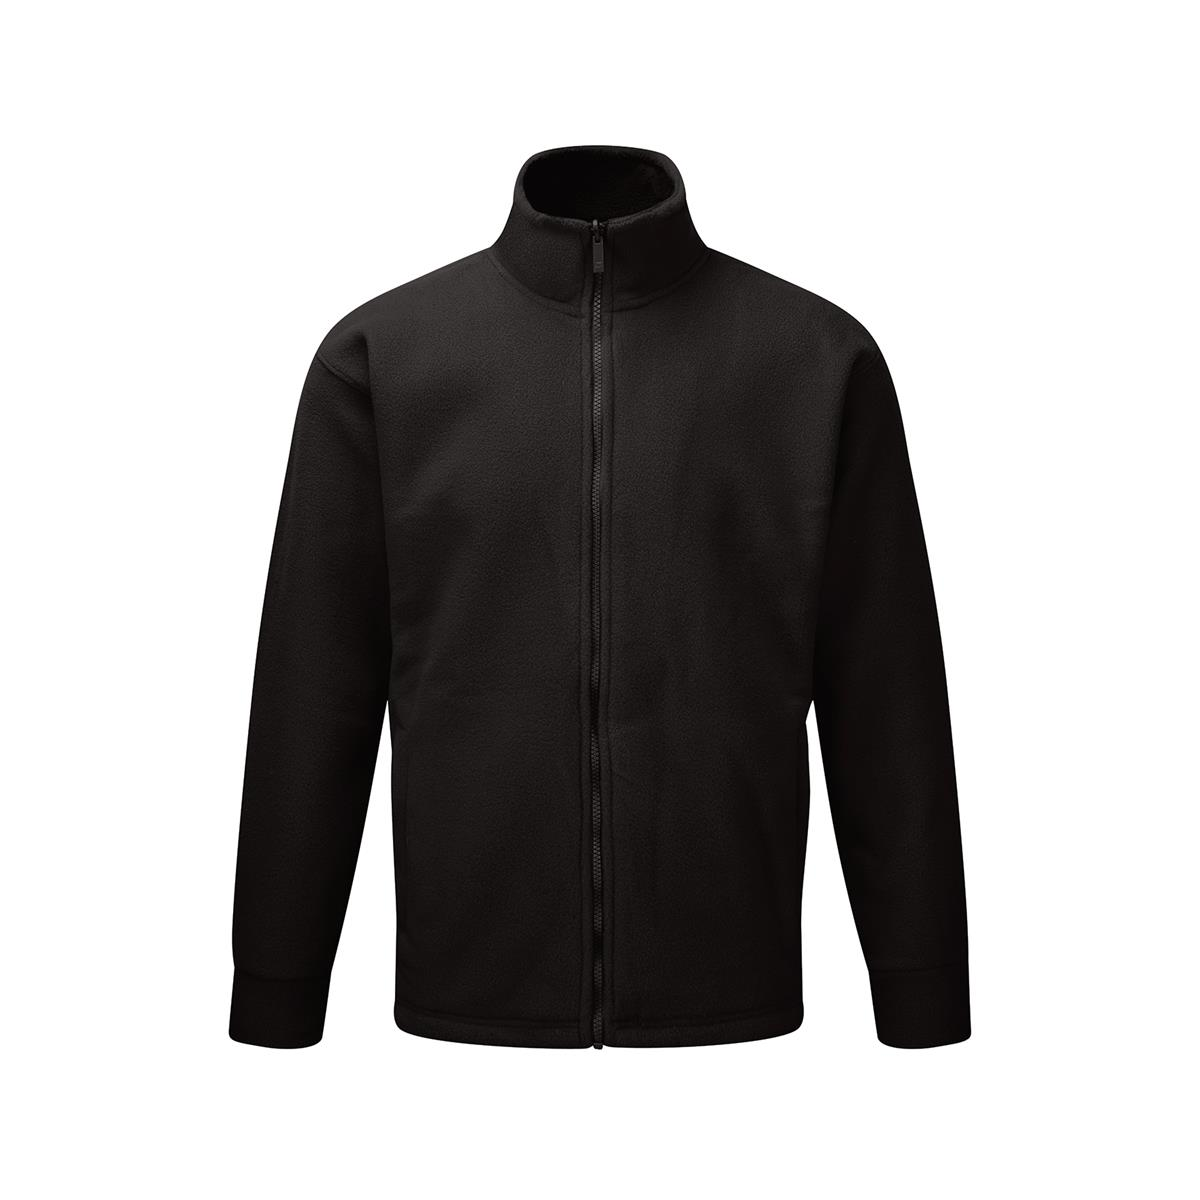 Image for Basic Fleece Jacket Elasticated Cuffs and Full Zip Front Med Black 1-3 Days Lead Time